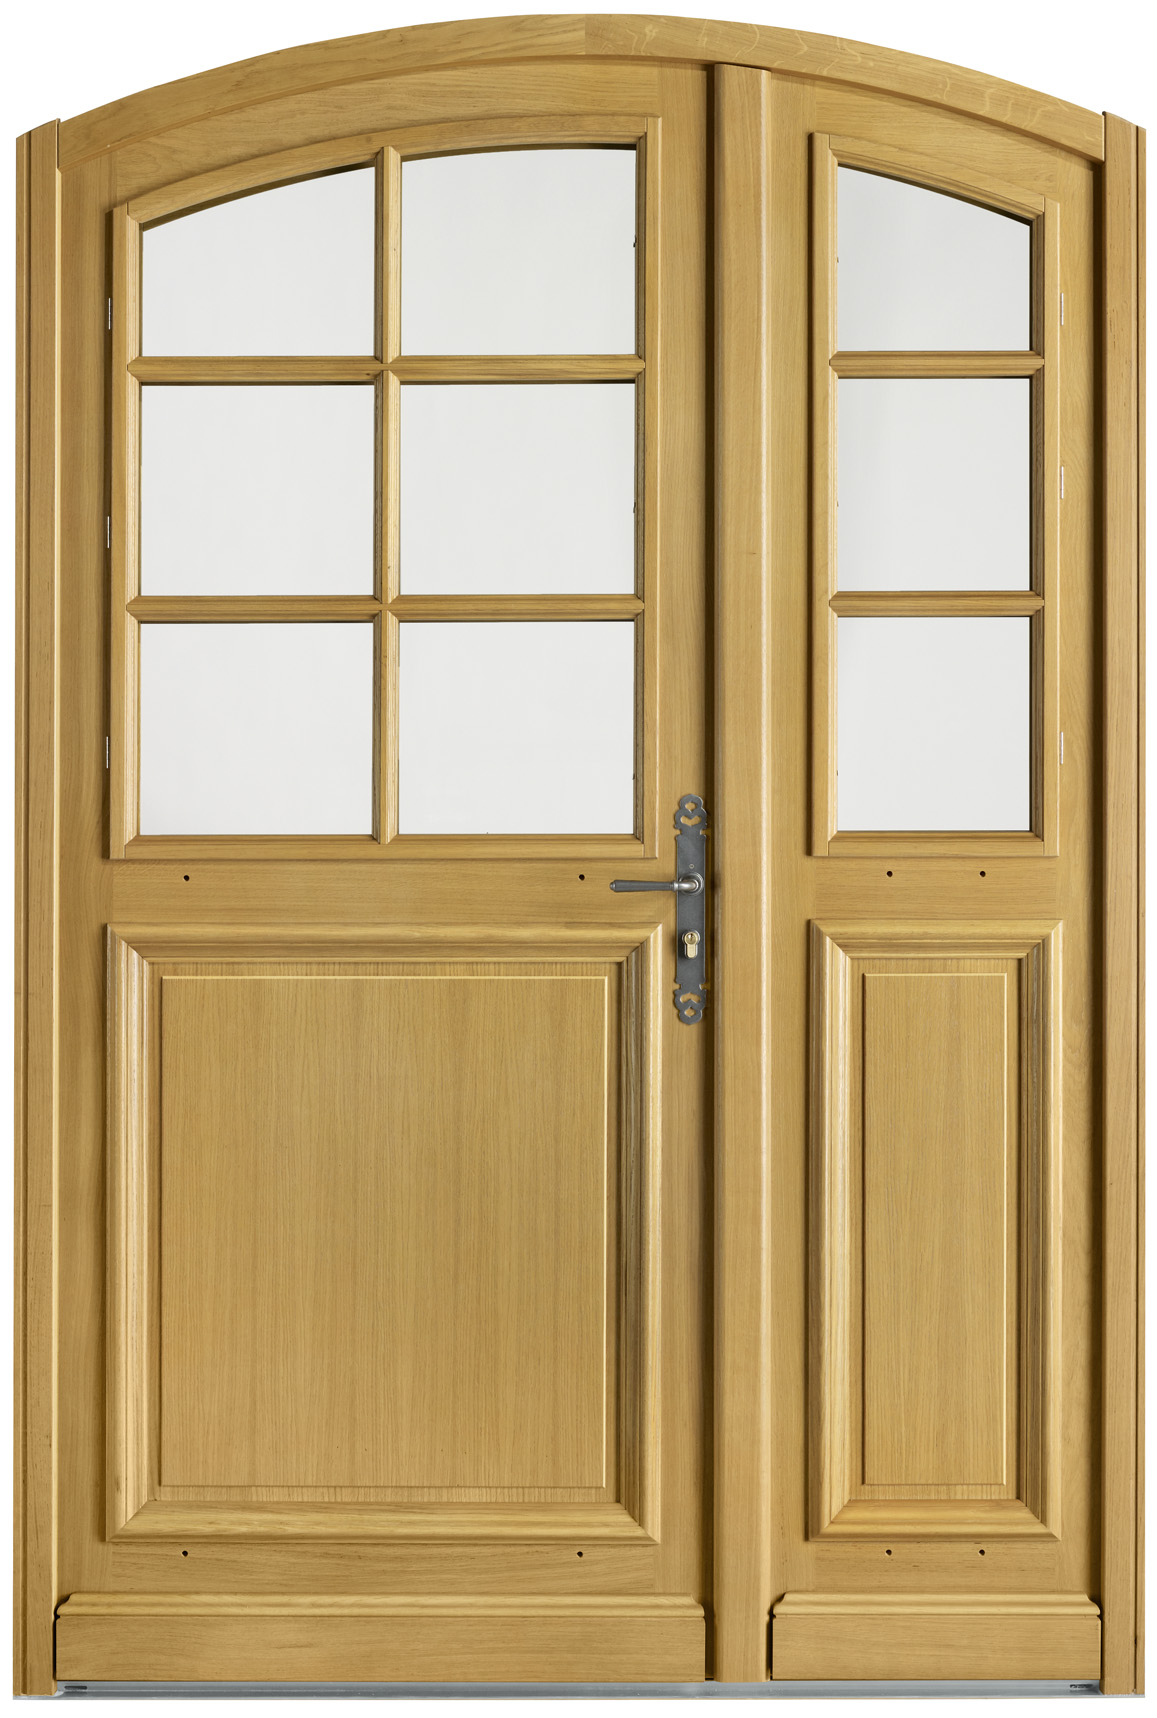 Portes d 39 entr e bois evenos swao for Dimension porte entree